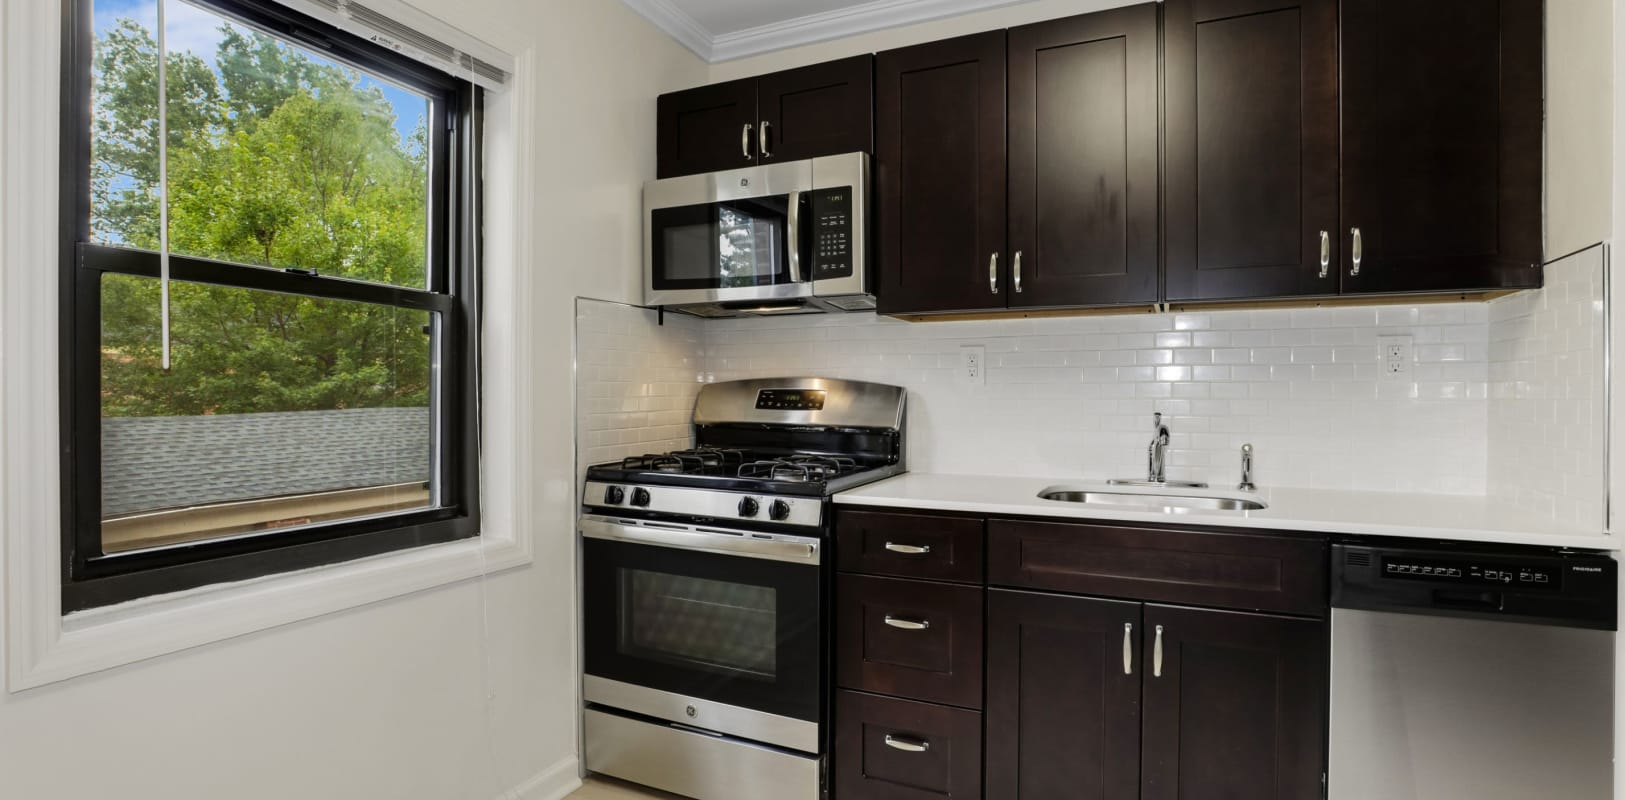 Kitchen with plenty of cabinet space and a large window at Continental Gardens in River Edge, New Jersey